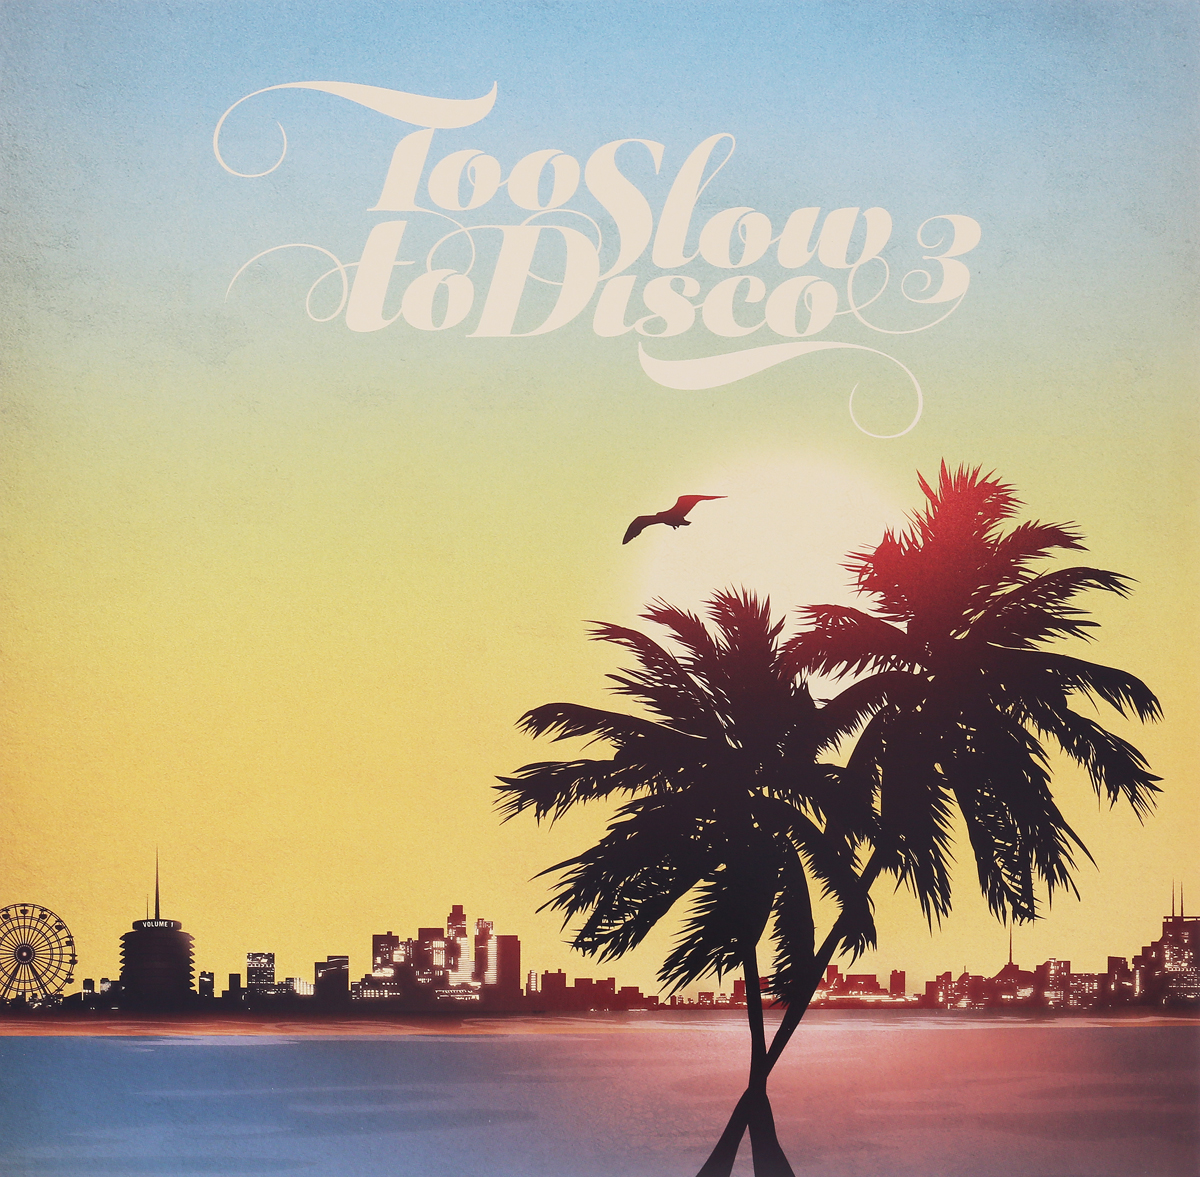 Too Slow To Disco 3 (2 LP)